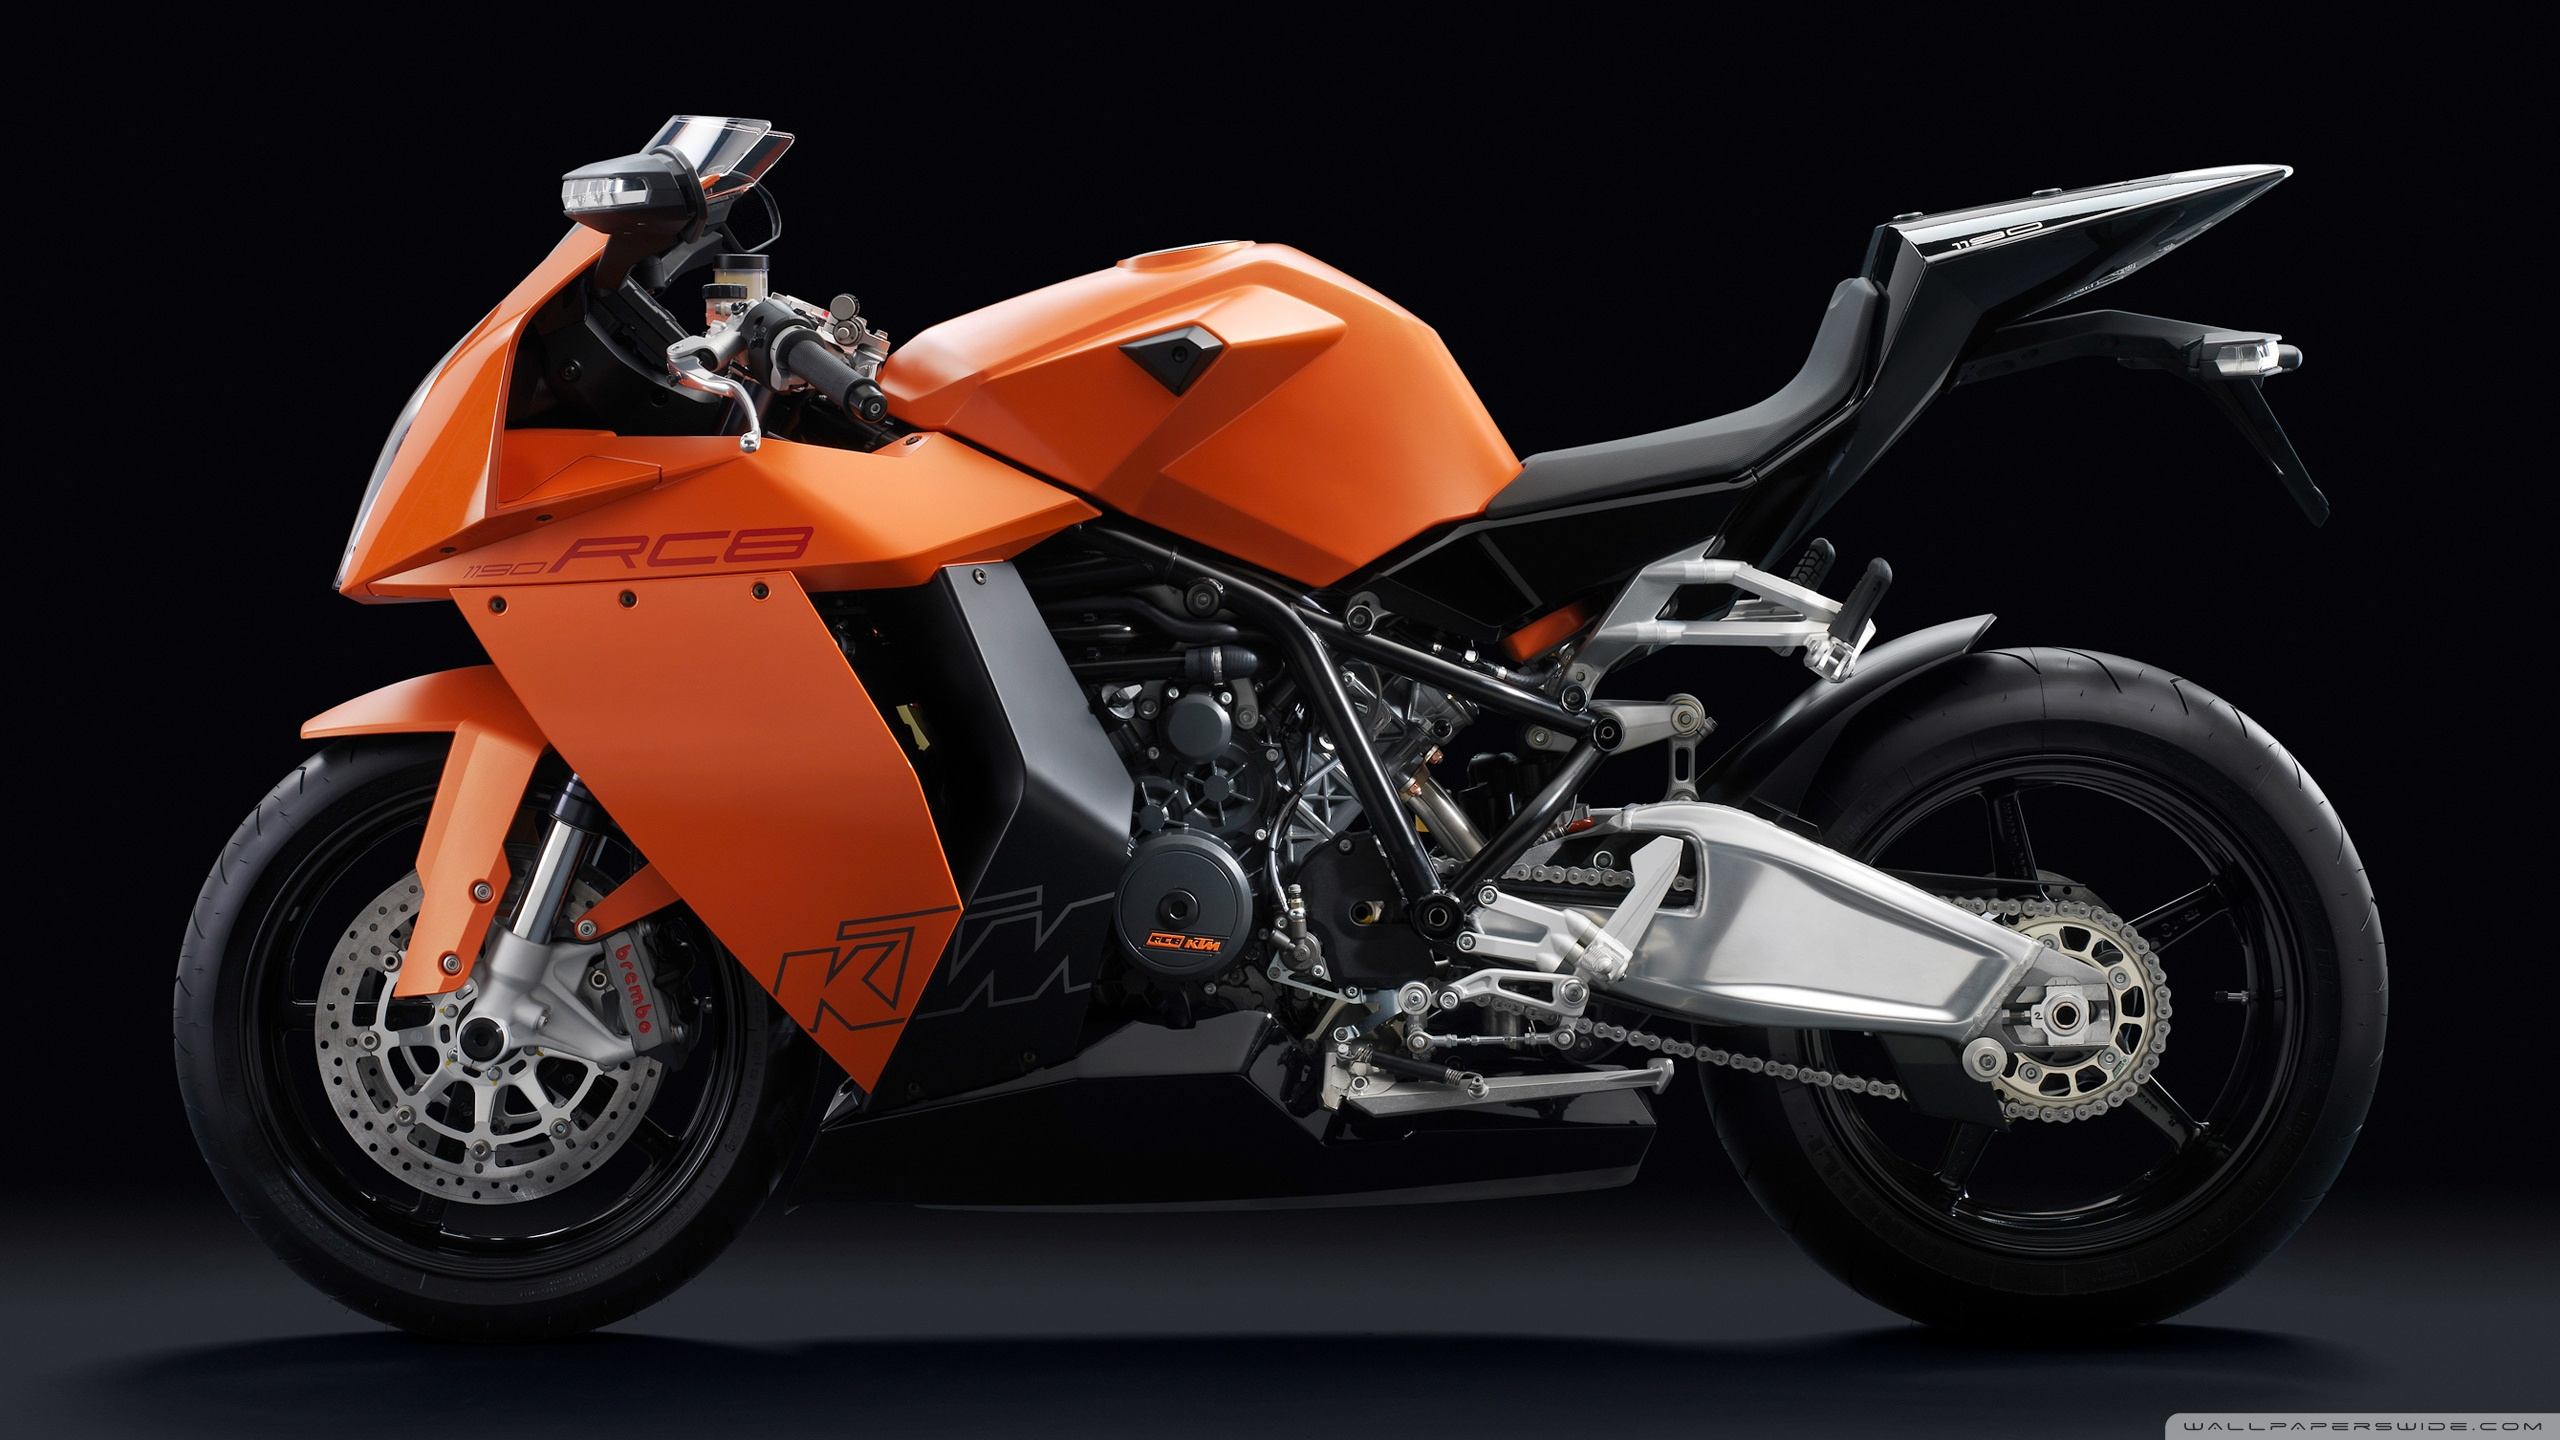 2560x1440 - KTM RC8 Wallpapers 12